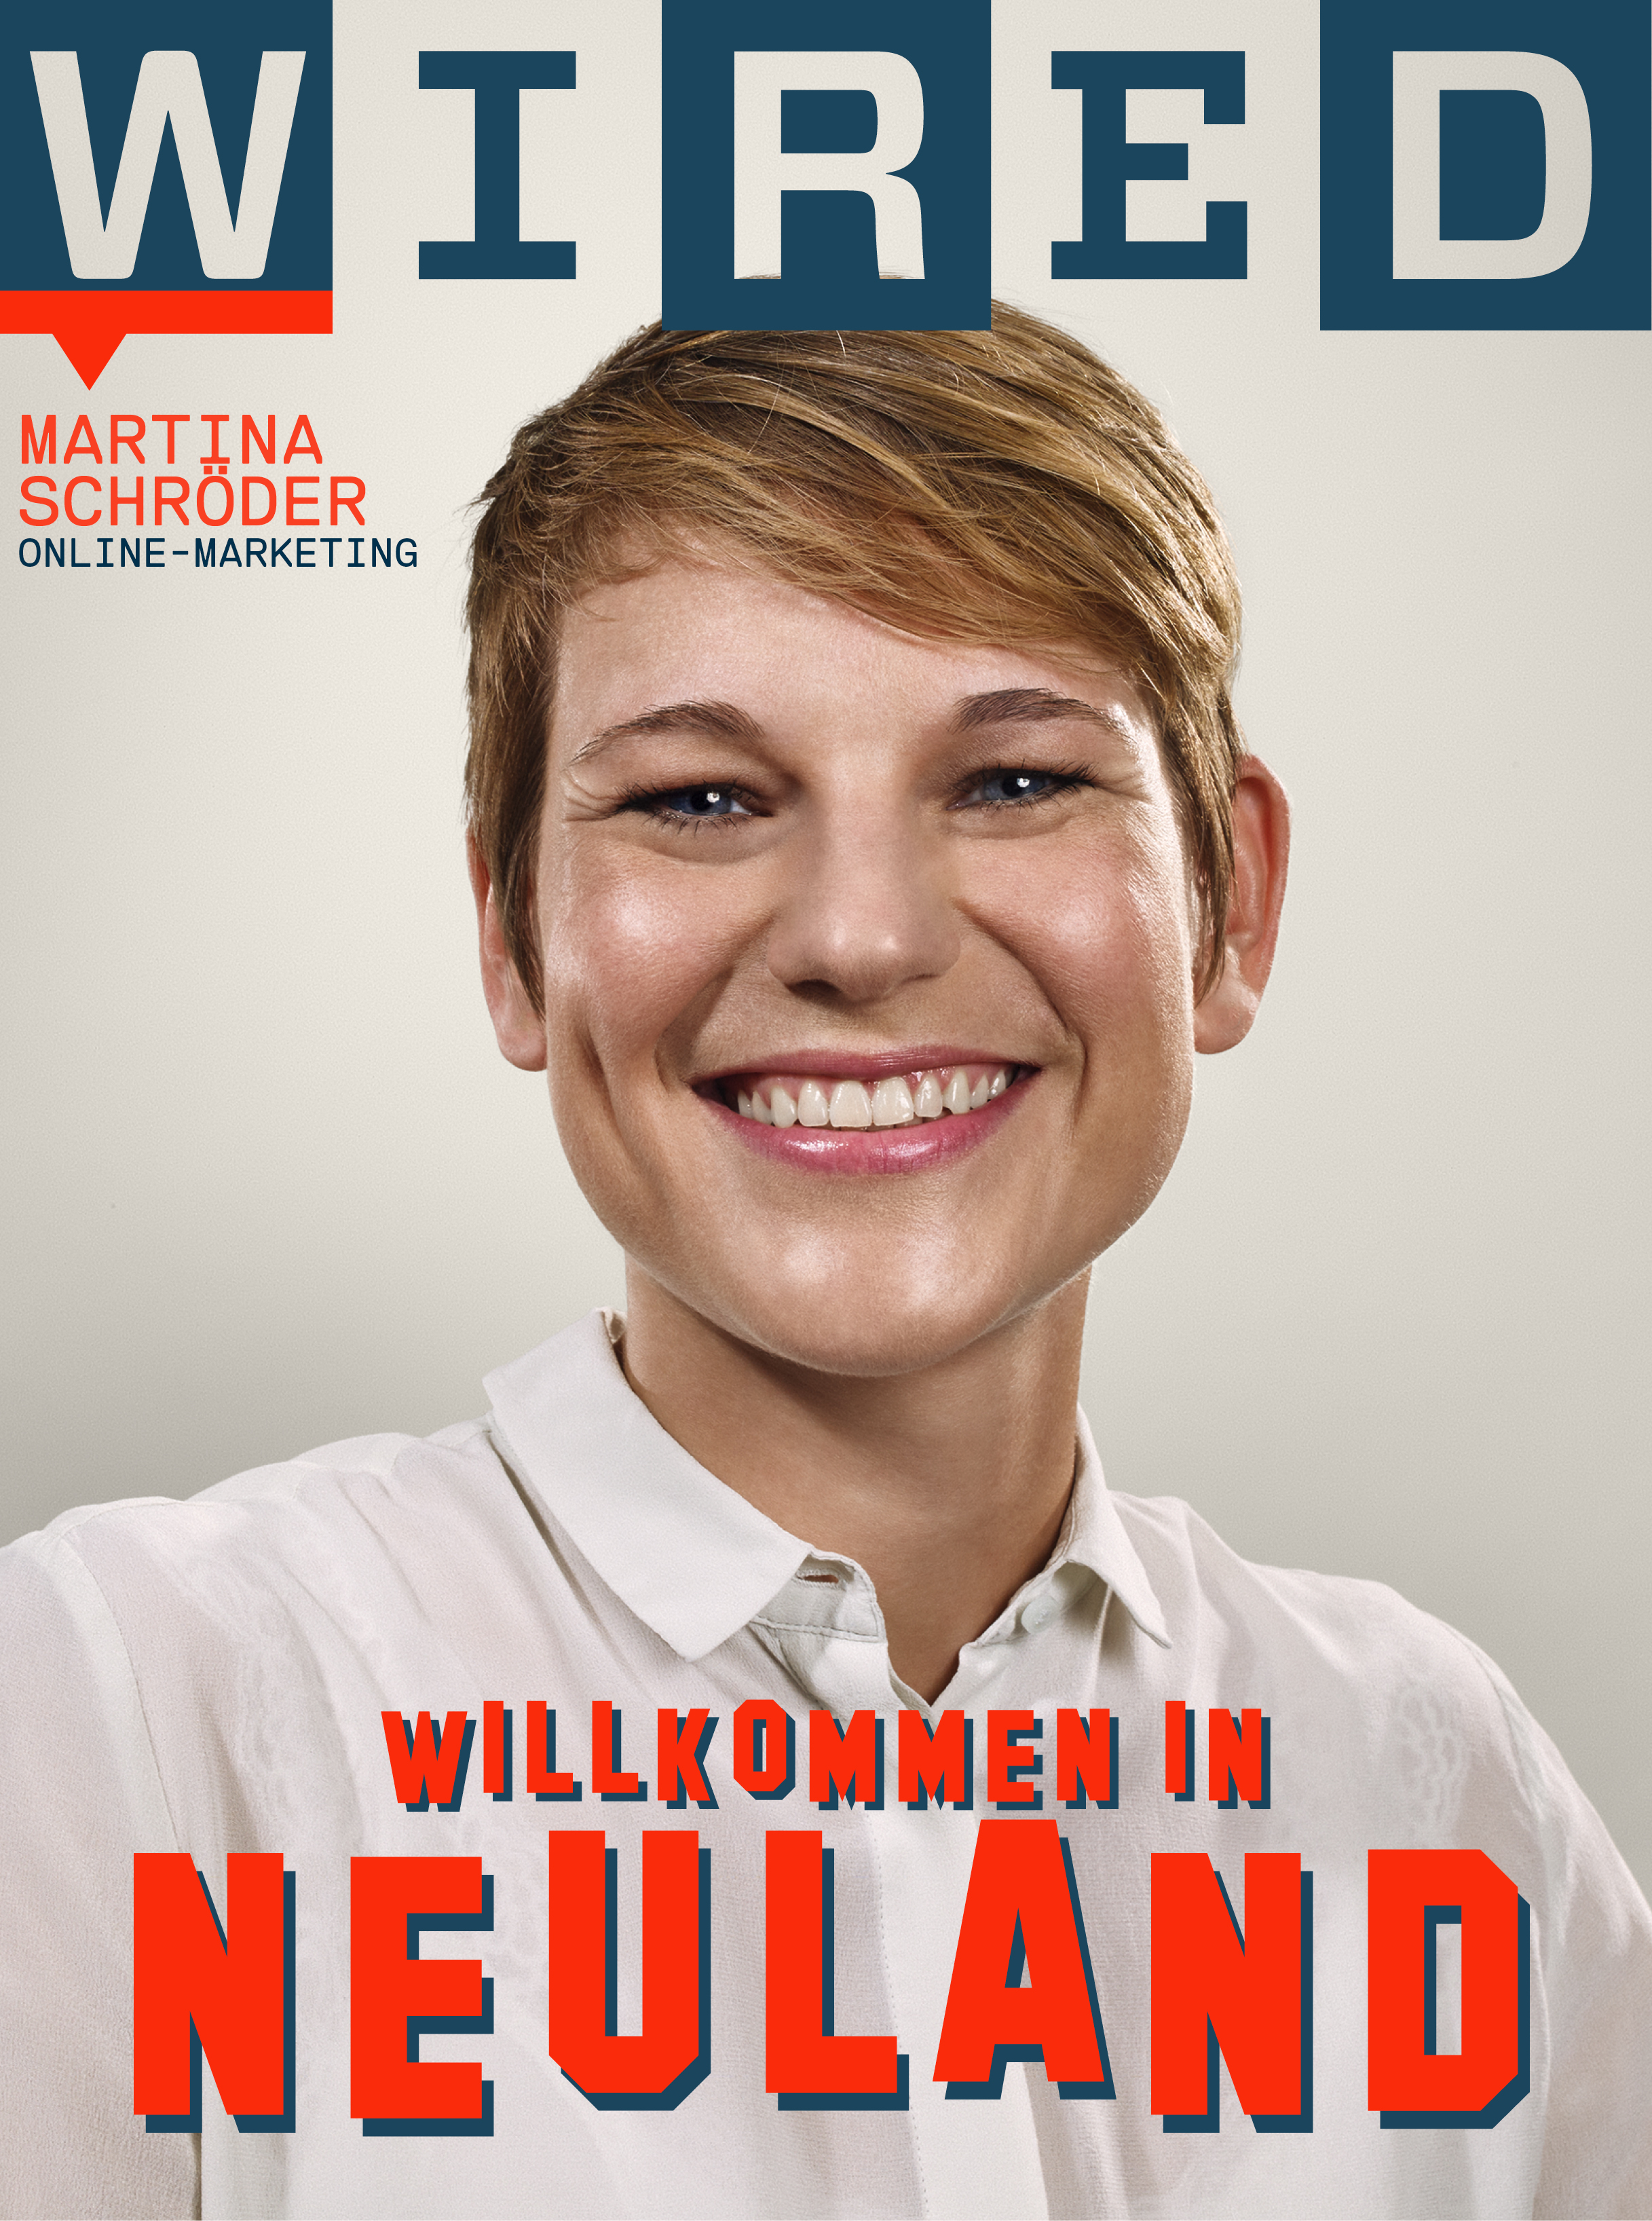 WIRED - Willkommen in Neuland - Martina Schröder - ©WIRED